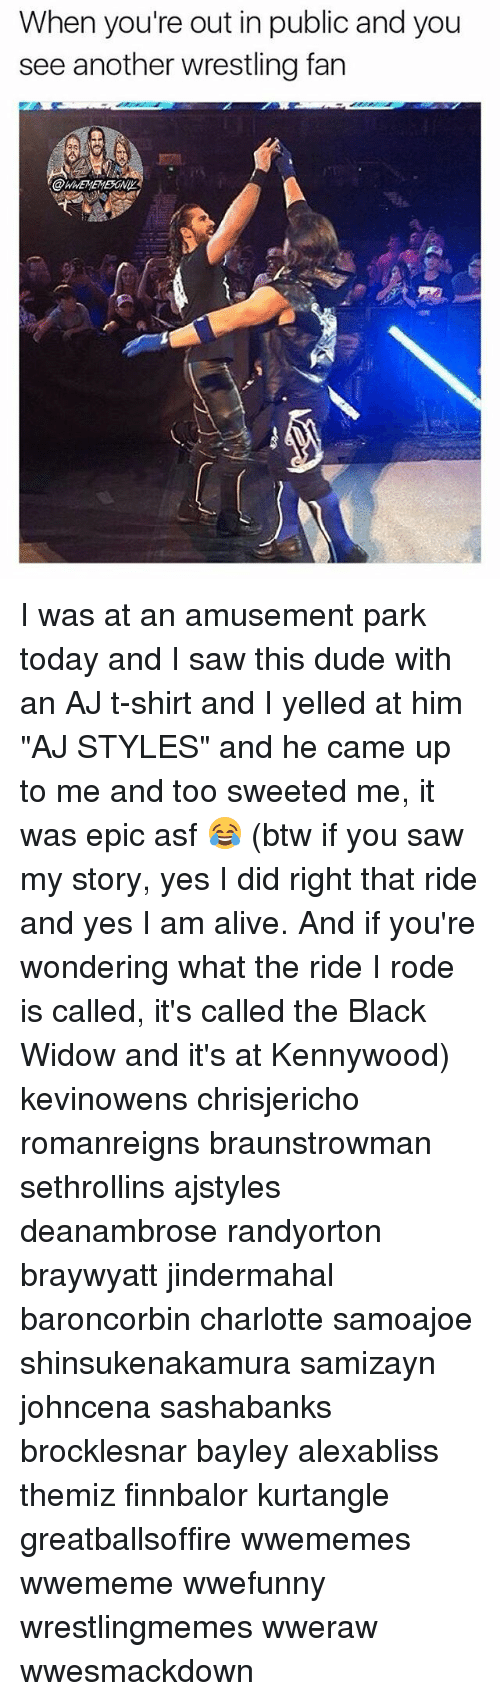 """Bayley: When you're out in public and you  see another wrestling fan I was at an amusement park today and I saw this dude with an AJ t-shirt and I yelled at him """"AJ STYLES"""" and he came up to me and too sweeted me, it was epic asf 😂 (btw if you saw my story, yes I did right that ride and yes I am alive. And if you're wondering what the ride I rode is called, it's called the Black Widow and it's at Kennywood) kevinowens chrisjericho romanreigns braunstrowman sethrollins ajstyles deanambrose randyorton braywyatt jindermahal baroncorbin charlotte samoajoe shinsukenakamura samizayn johncena sashabanks brocklesnar bayley alexabliss themiz finnbalor kurtangle greatballsoffire wwememes wwememe wwefunny wrestlingmemes wweraw wwesmackdown"""